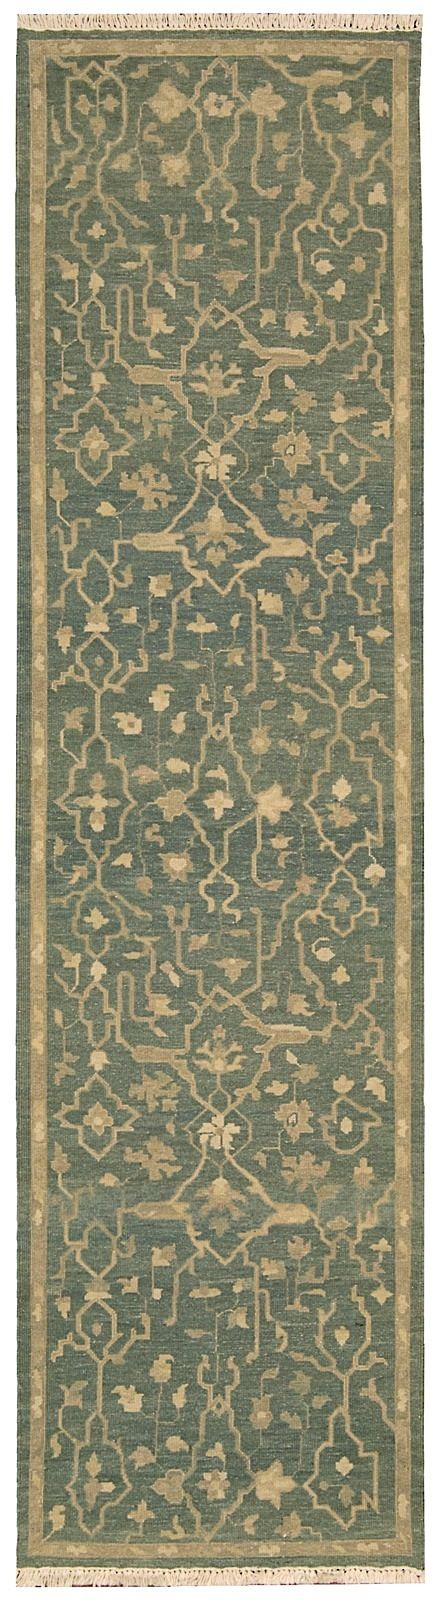 nourison nourmak encore contemporary area rug collection